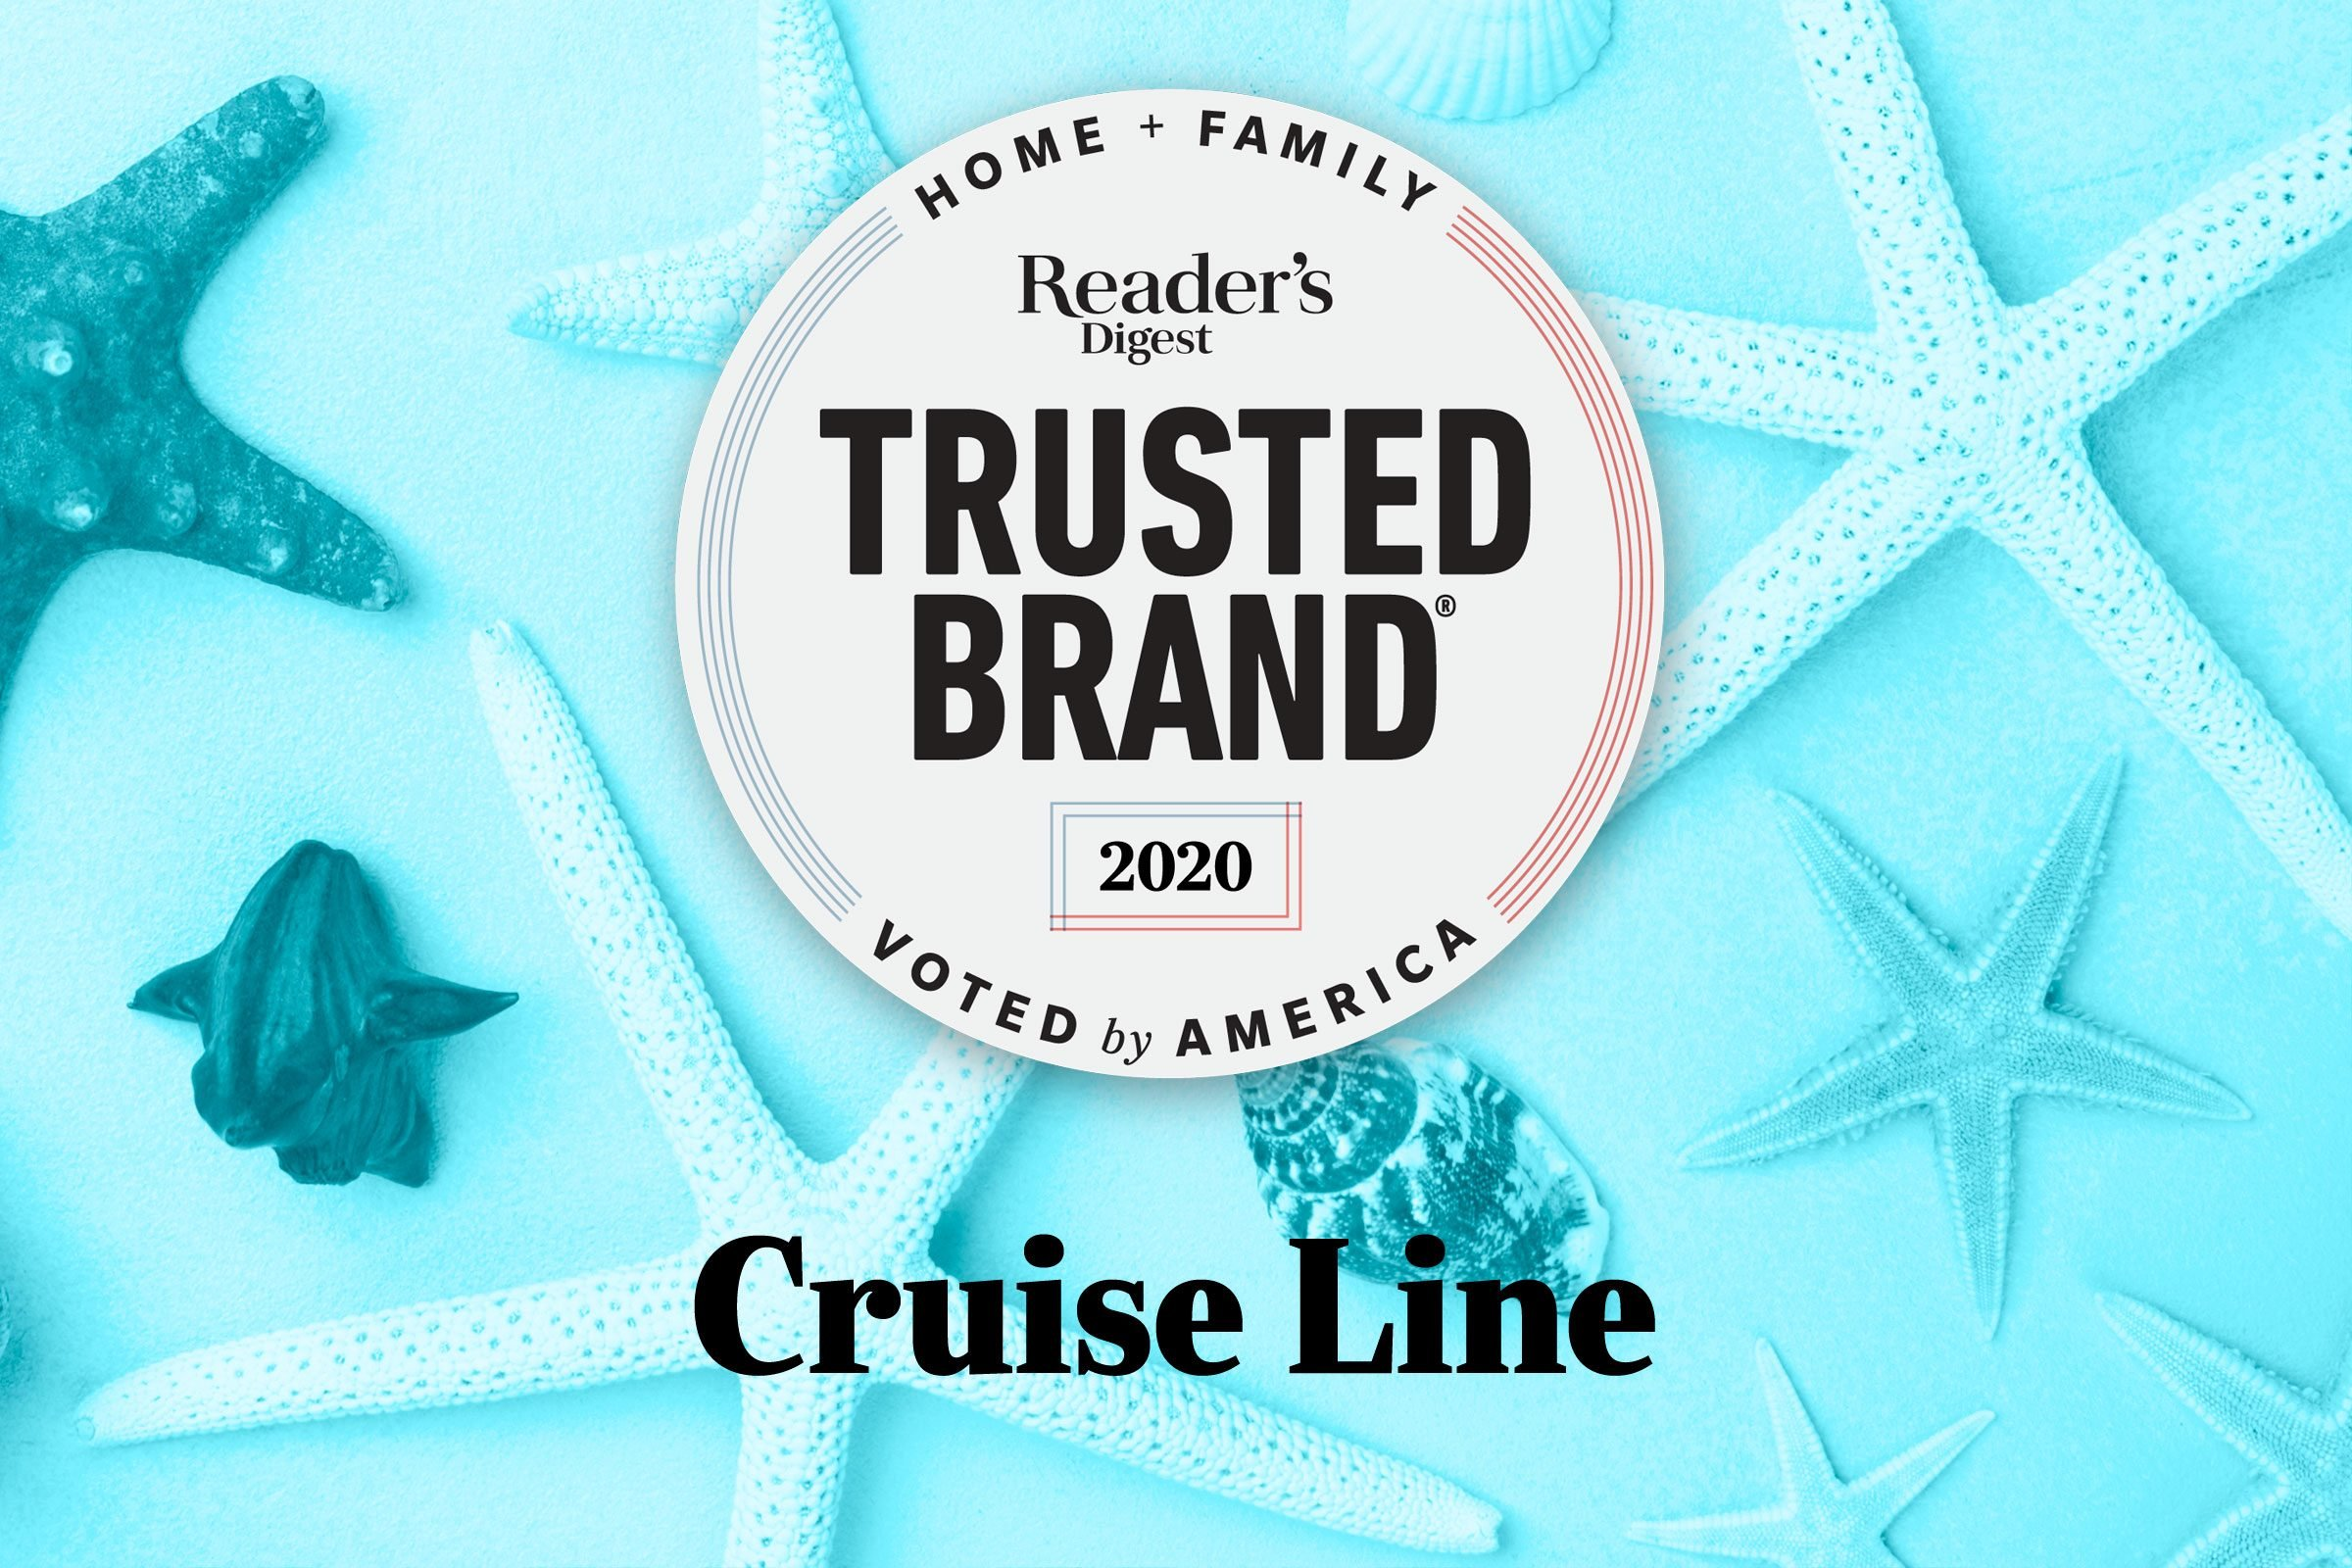 Reader's Digest Trusted Brand: Cruise Line